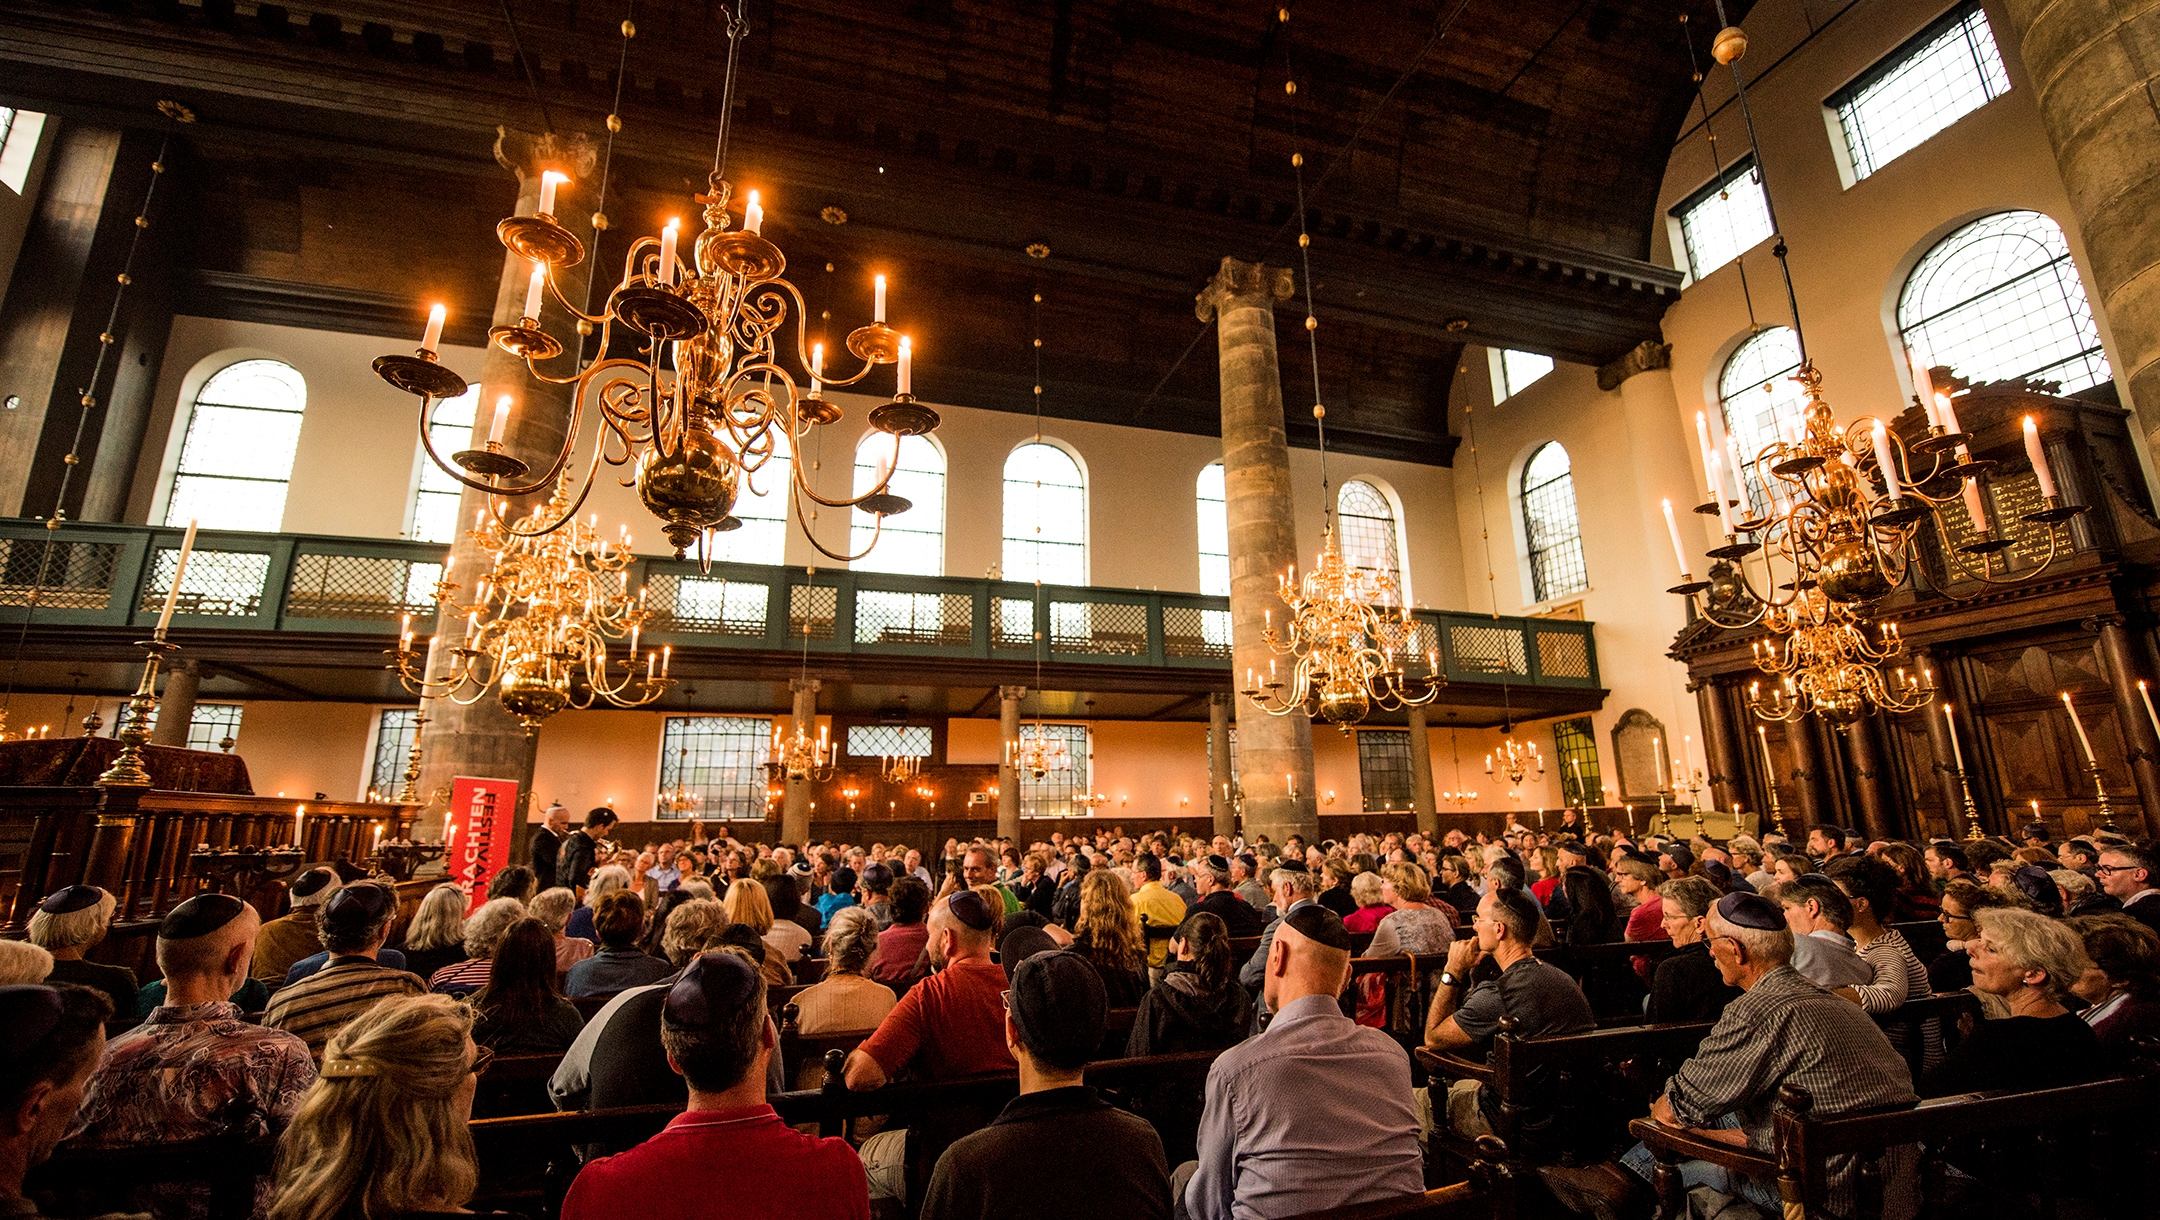 People attend a concert inside the Portuguese Synagogue at the Jewish Cultural Quarter of Amsterdam, the Netherlands on Aug. 17, 2017. (Cnaan Liphshiz)